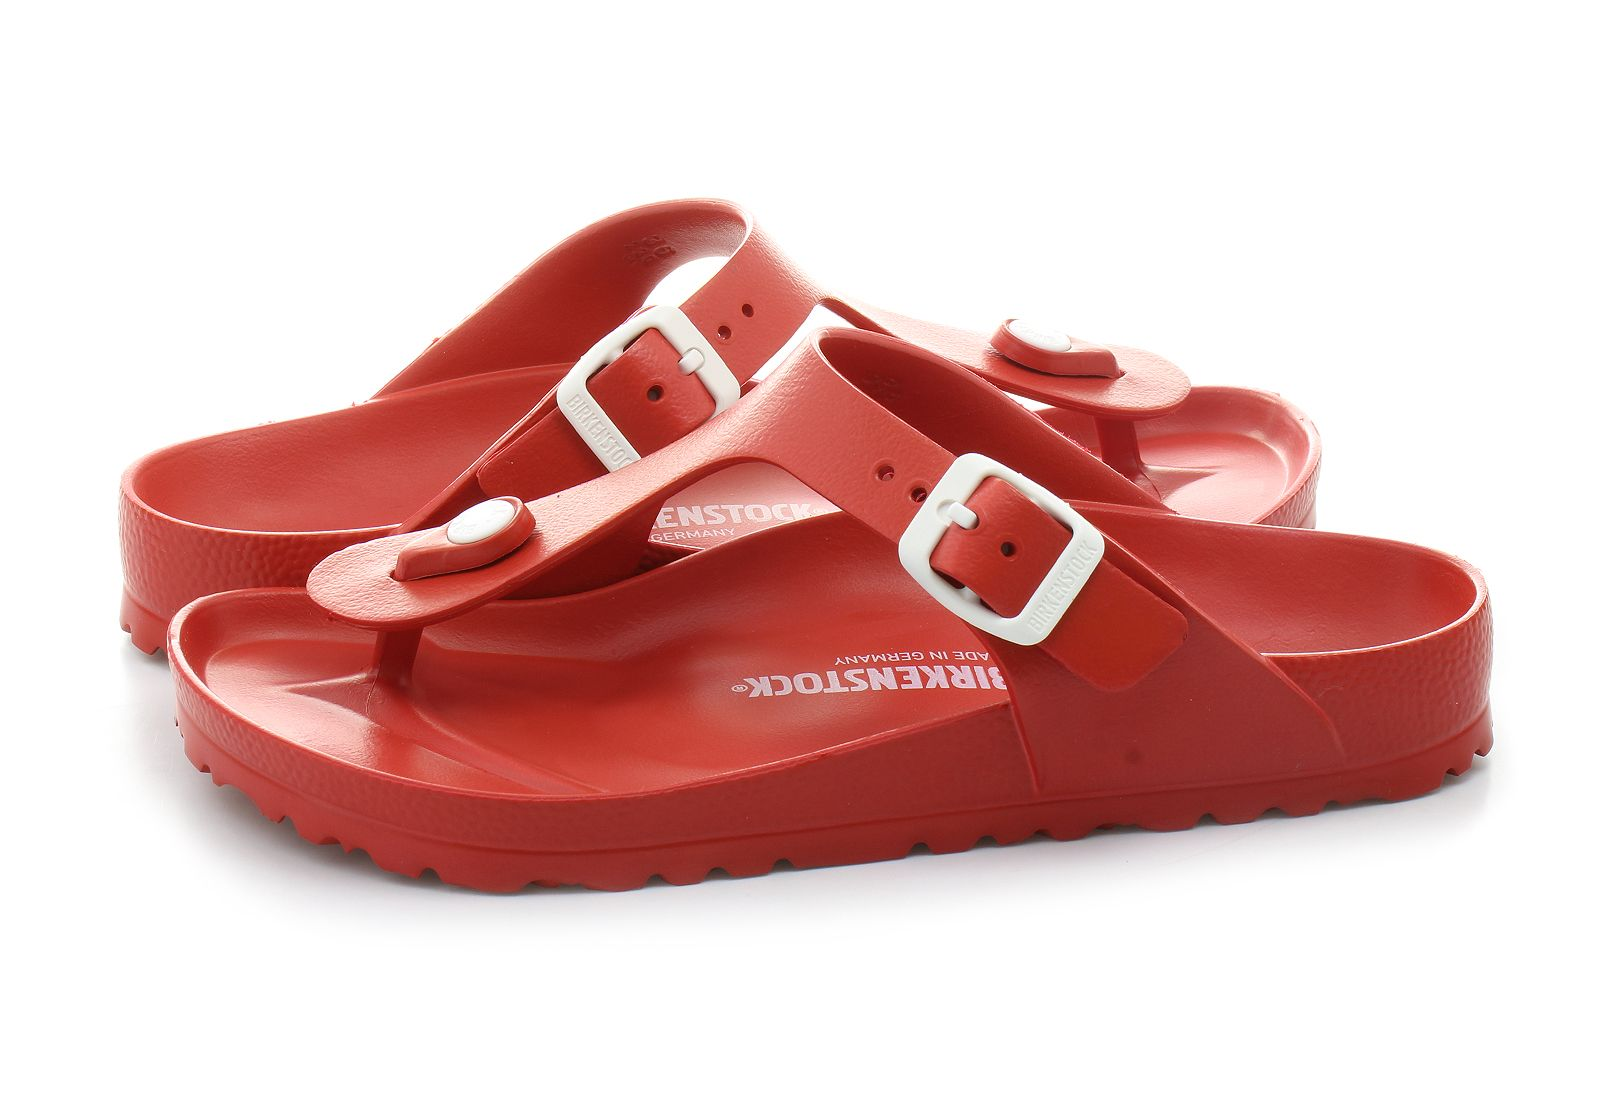 c4e664947e04 Birkenstock Slippers - Gizeh Eva - 128231-red - Online shop for ...